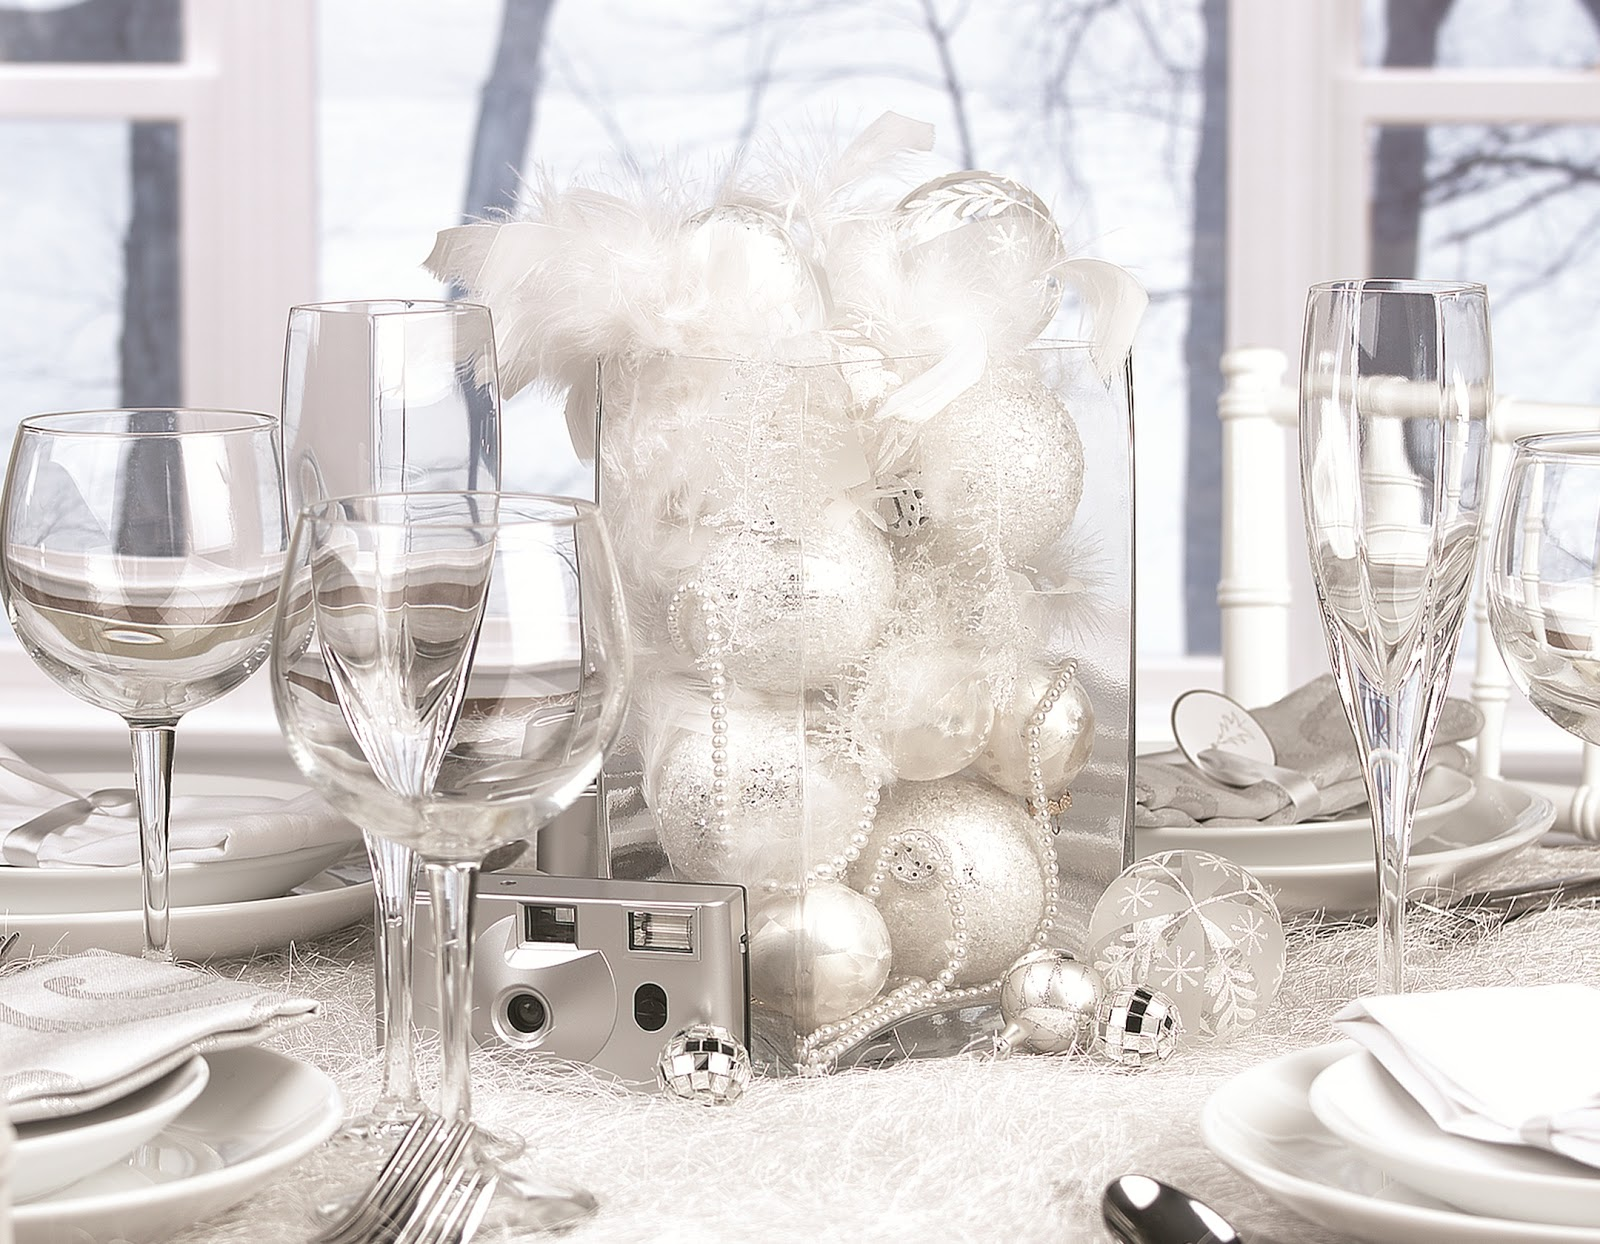 Ways to turn your home into a winter wonderland happy holidays